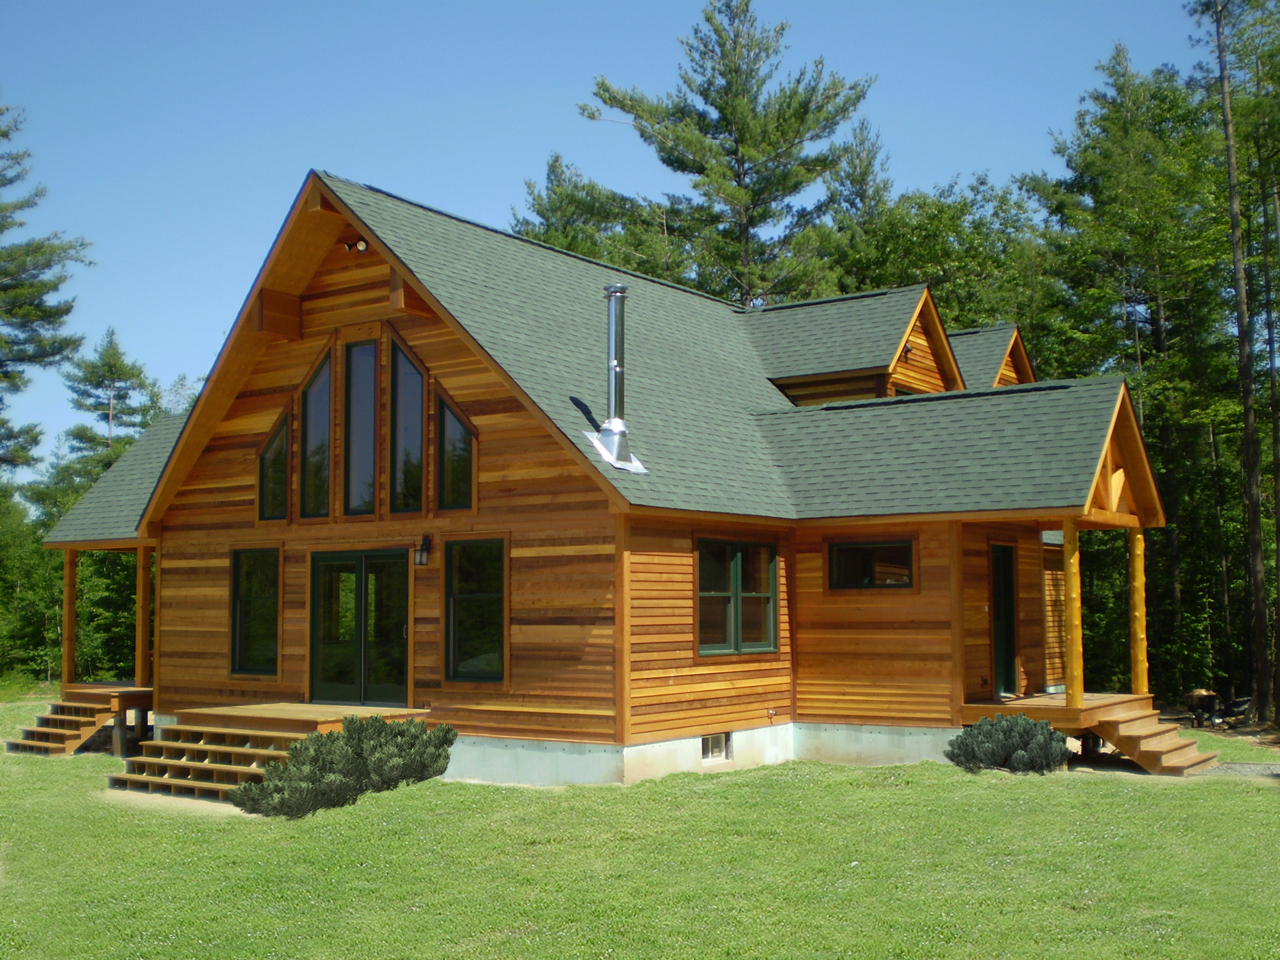 Saratoga modular homes custom modular homes upstate ny for Custom home architect cost